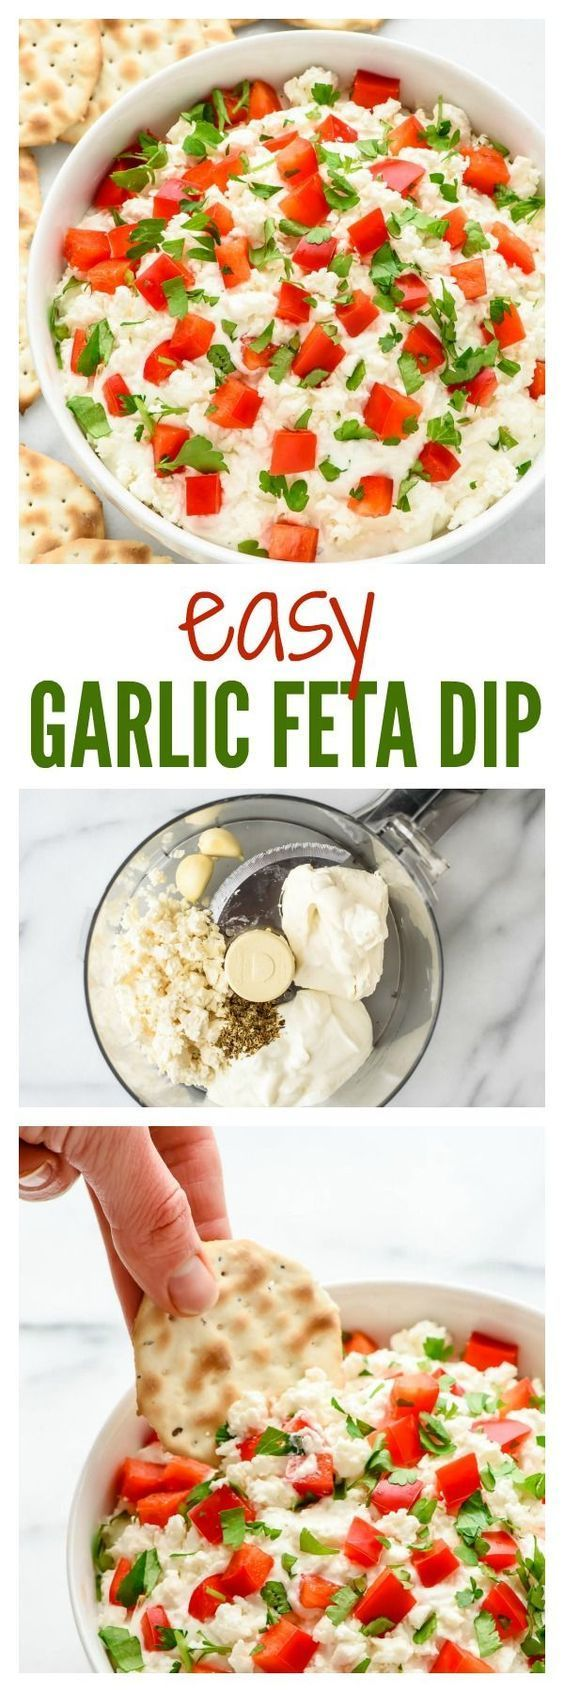 This easy recipe for Garlic Feta Dip is ready to go in 10 minutes and everyone loves it! Love the festive red and green for Christmas or Thanksgiving appetizers! Made with Greek yogurt and light cream cheese, but you'd never know.